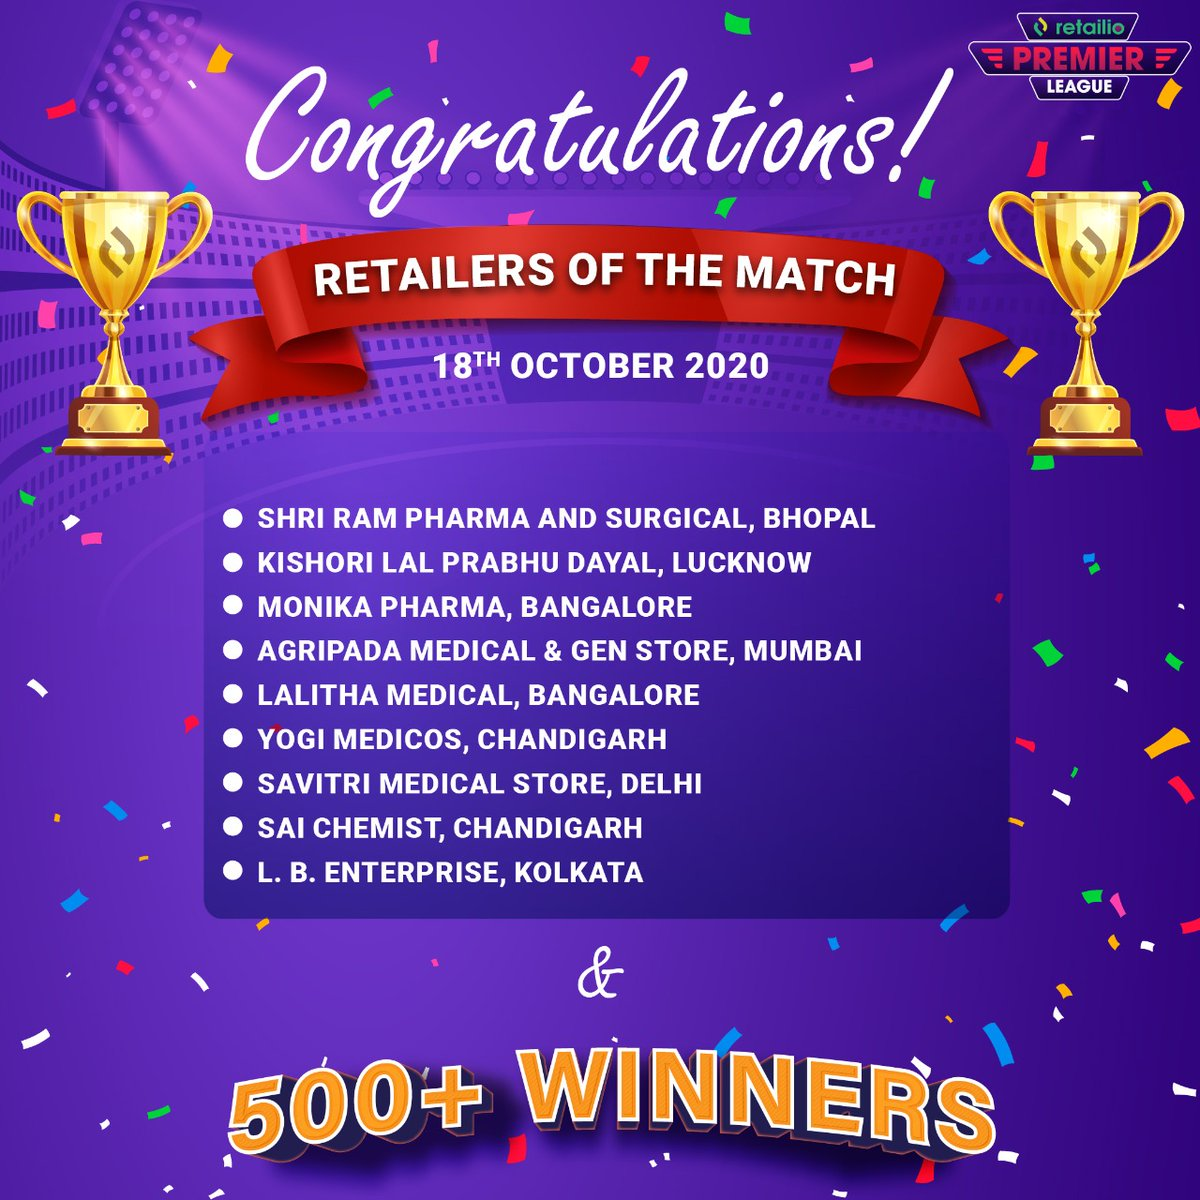 Congratulations to our Retailers of the Match & 500+ winners for the 35th & 36th match on 18th October 2020, #SRH vs #KKR & #MI vs #KXI  You too can win BIG by Scoring More in Retailio Premier League.   Login to your Retailio App for more details.  #RetailioPremierLeague #Winners https://t.co/ulFxKqdB02